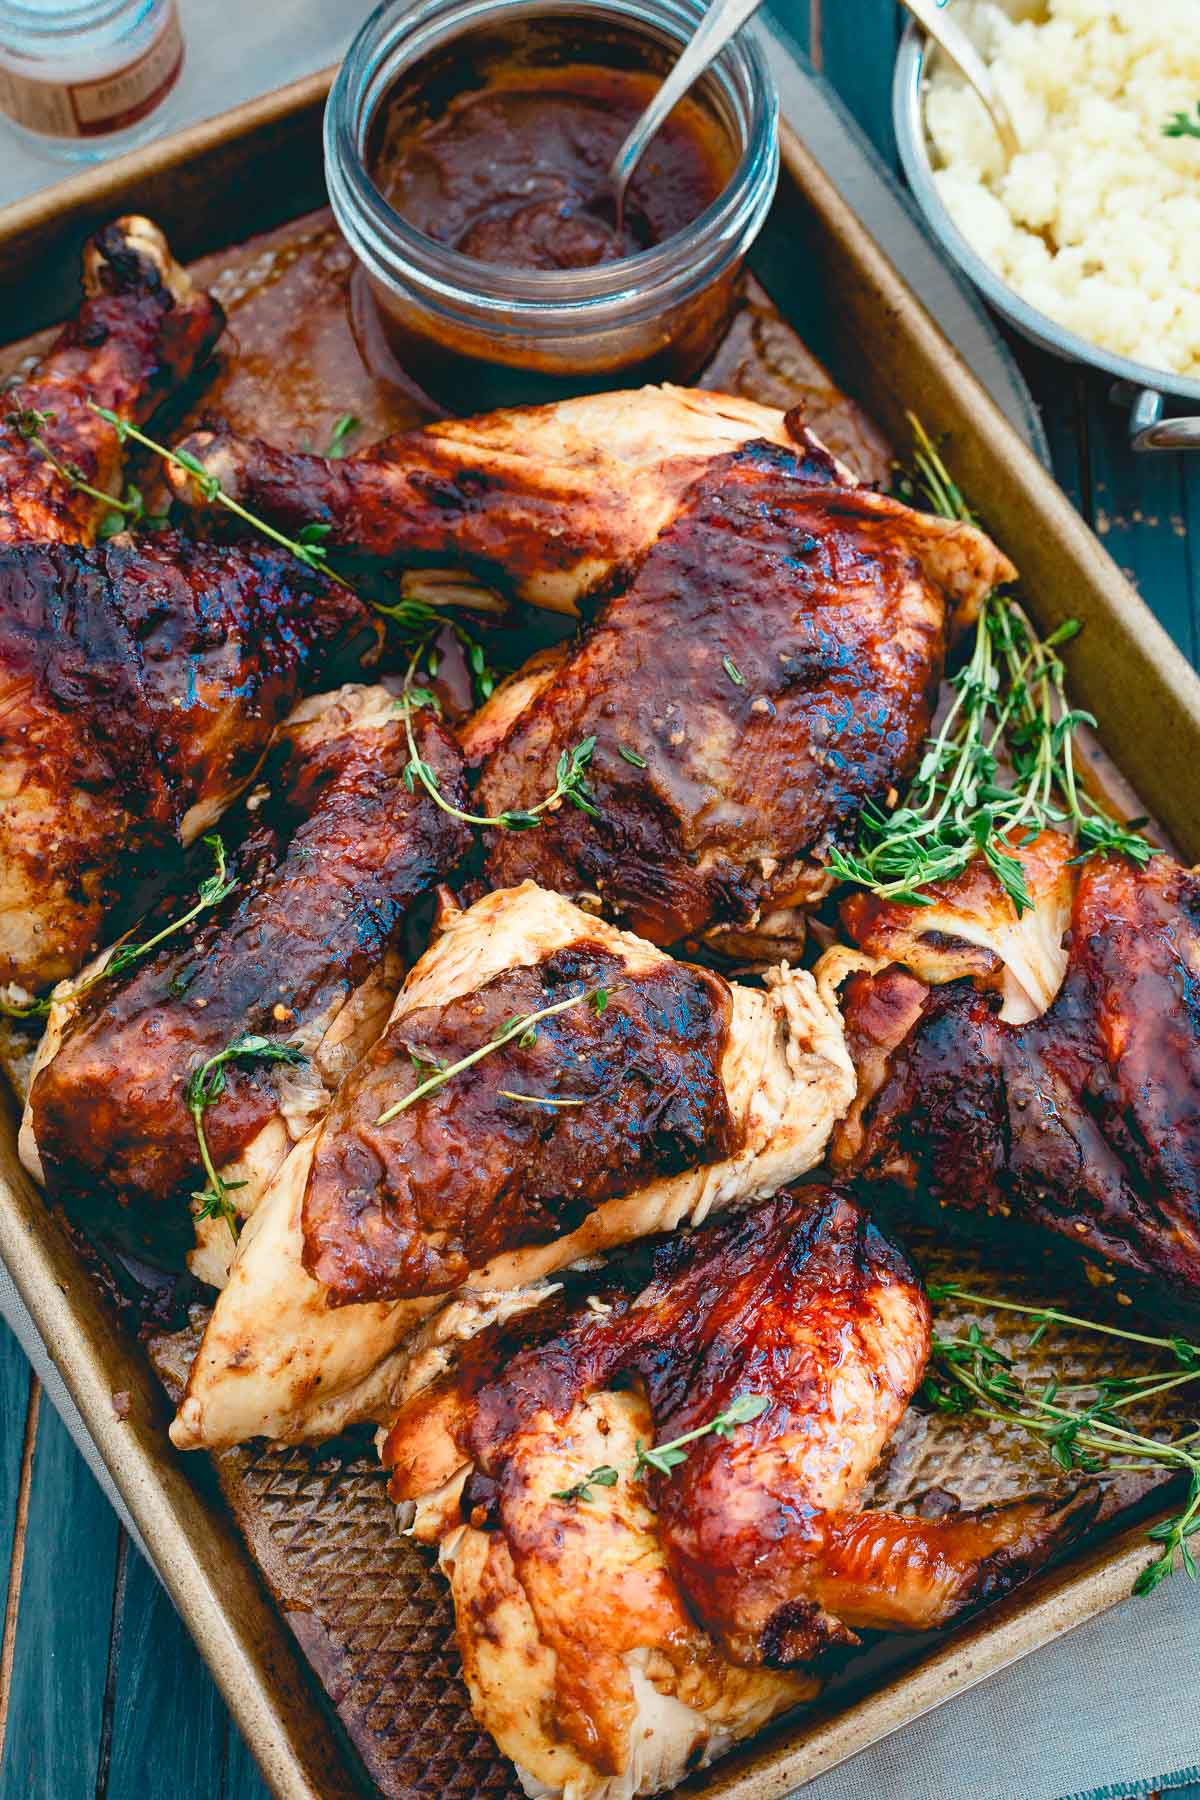 Sweet and savory apple butter is used as a saucy glaze on this roasted chicken for a great Sunday night meal.